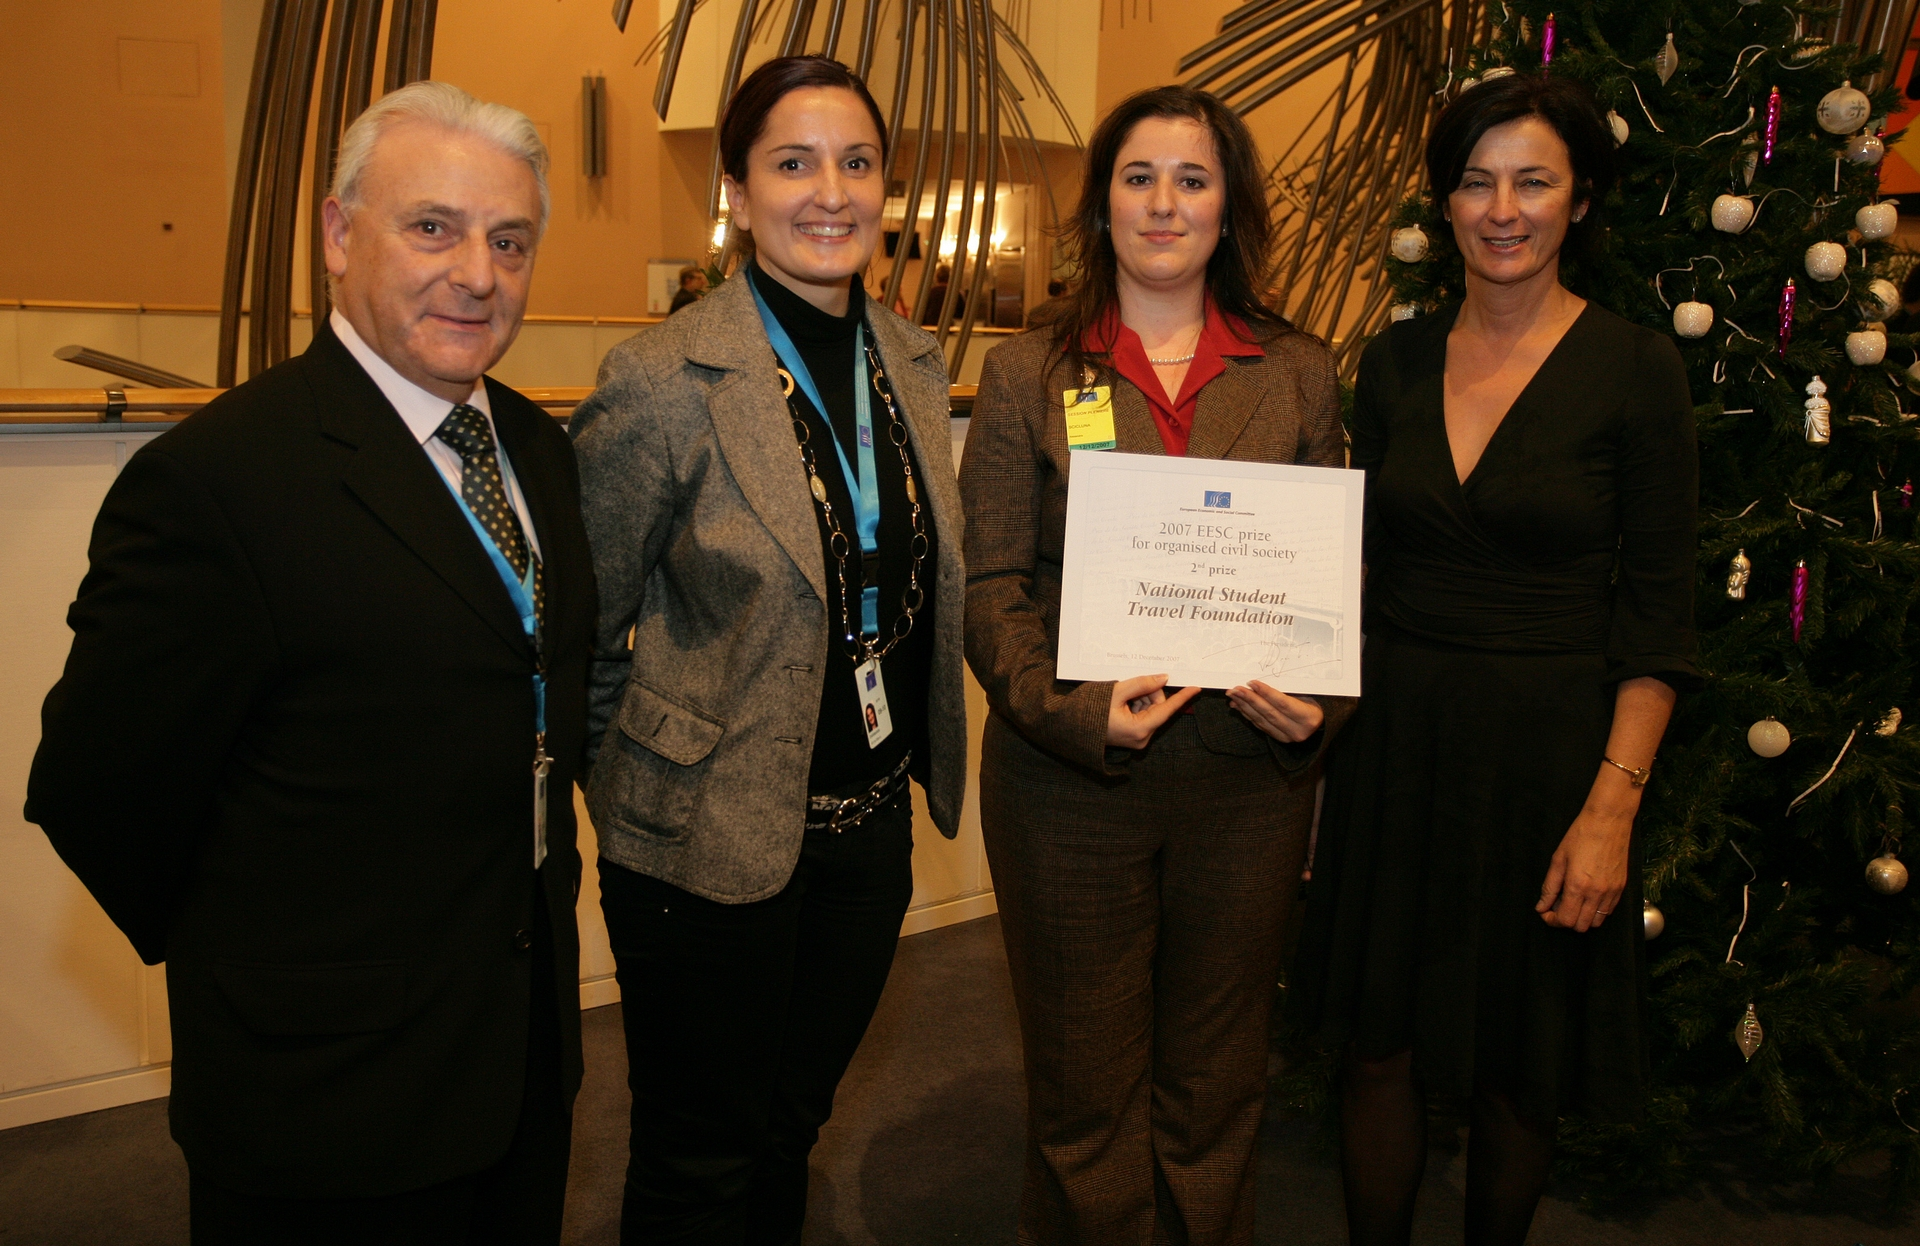 From left to right: Maltese EESC members Edwin Calleja, Anna Maria Darmanin and Sylvia Gauci with the representative of the Maltese National Student Travel Foundation, Alexandra Scicluna